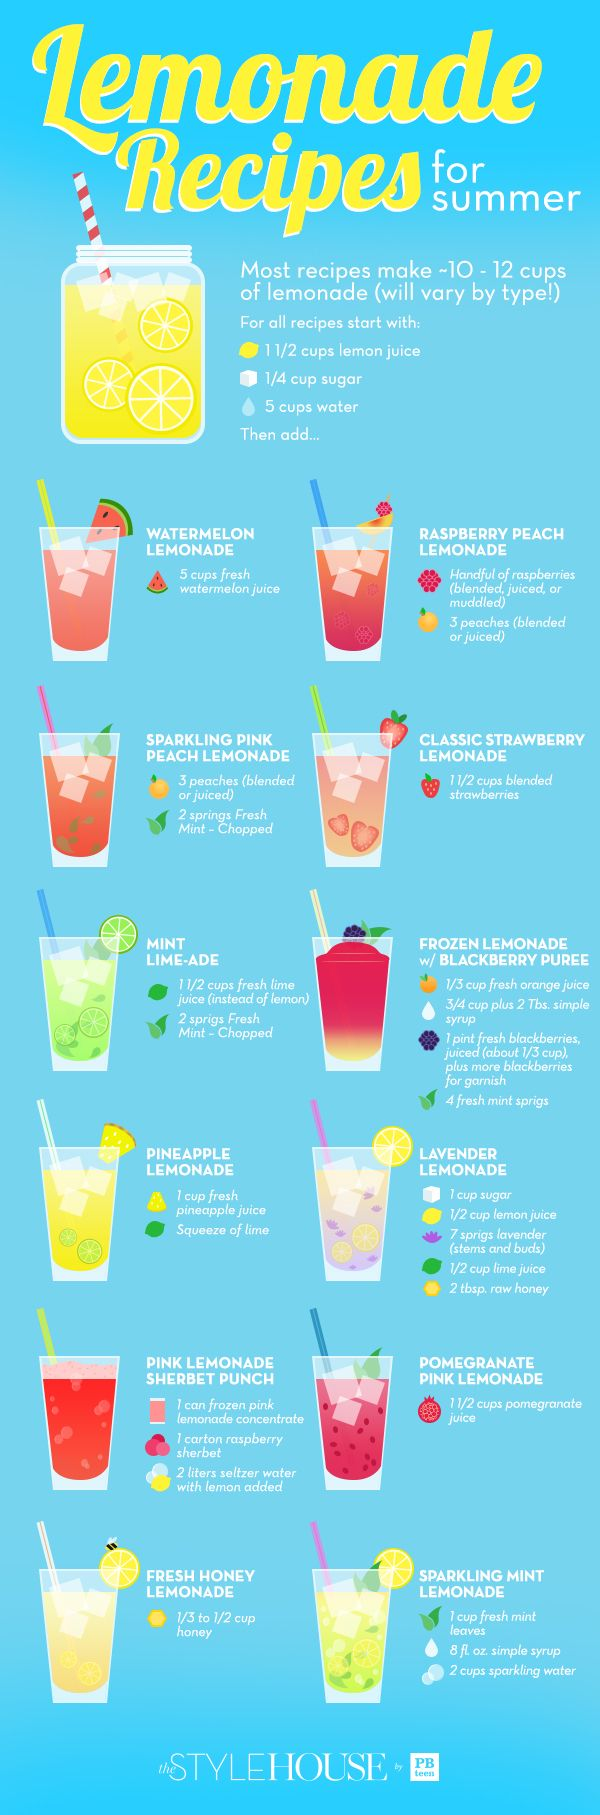 12 different lemonade recipes